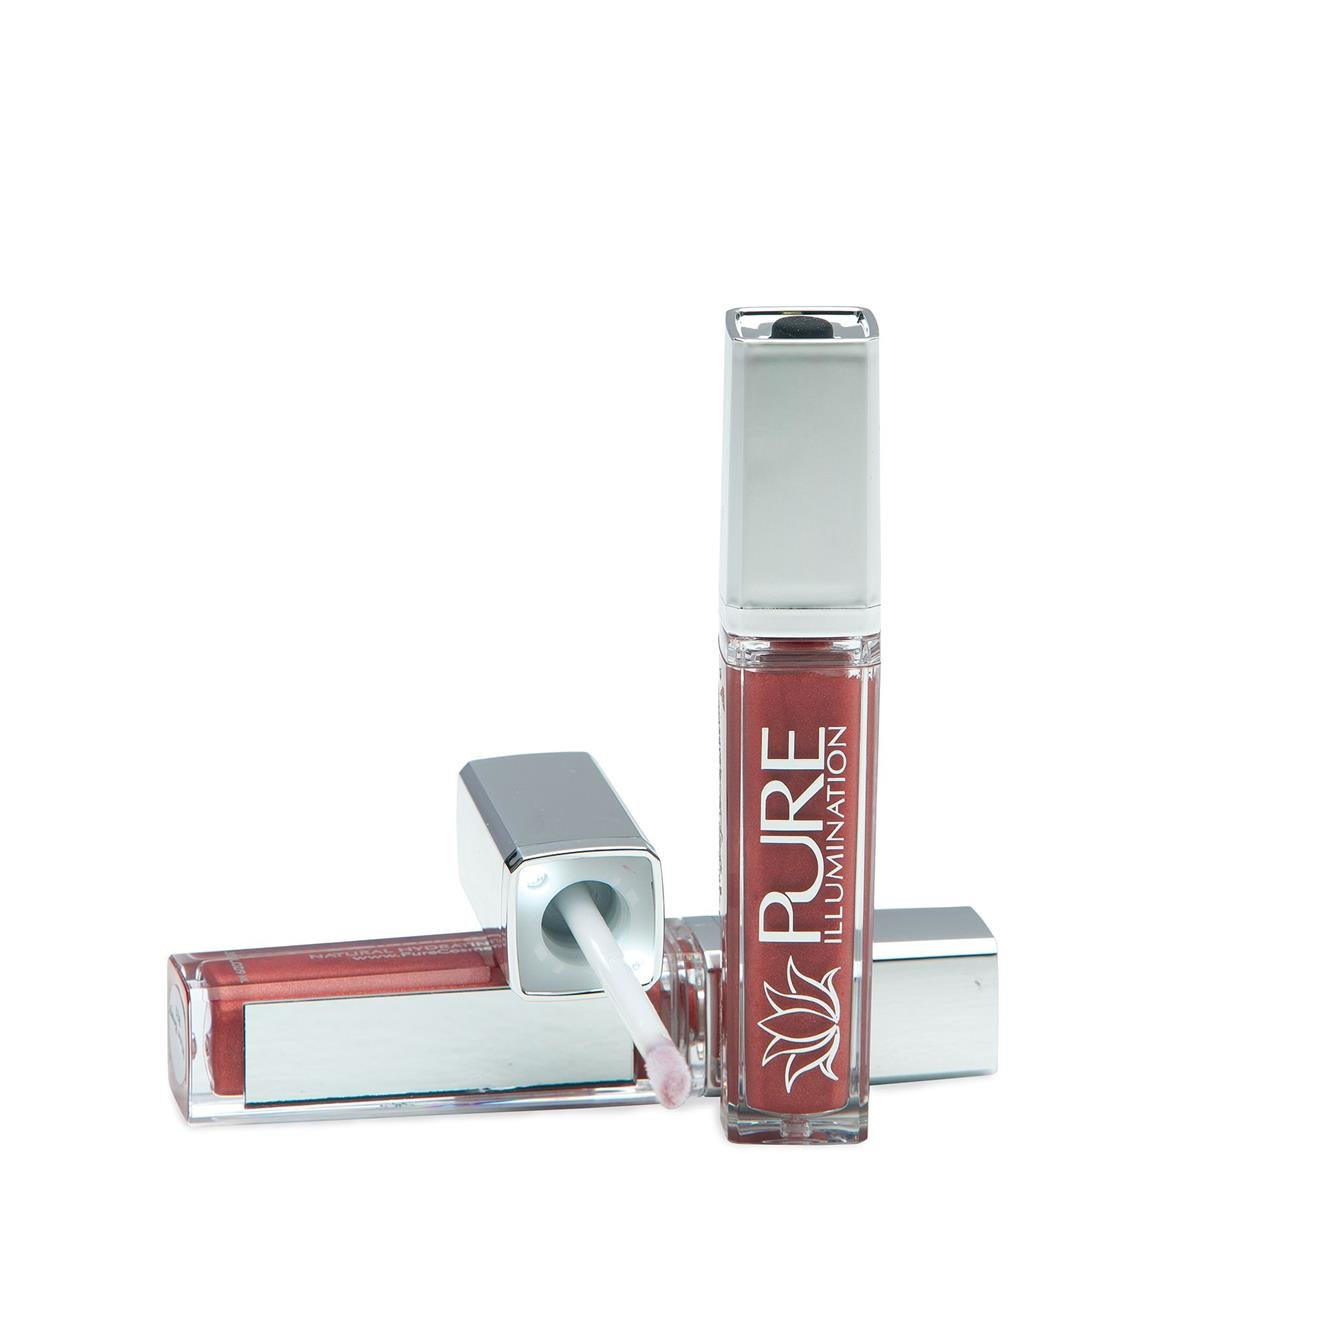 Pure Cosmetics Pure Illumination Natural Hydrating Lip Gloss Push Button  Light Up with Mirror - Wine